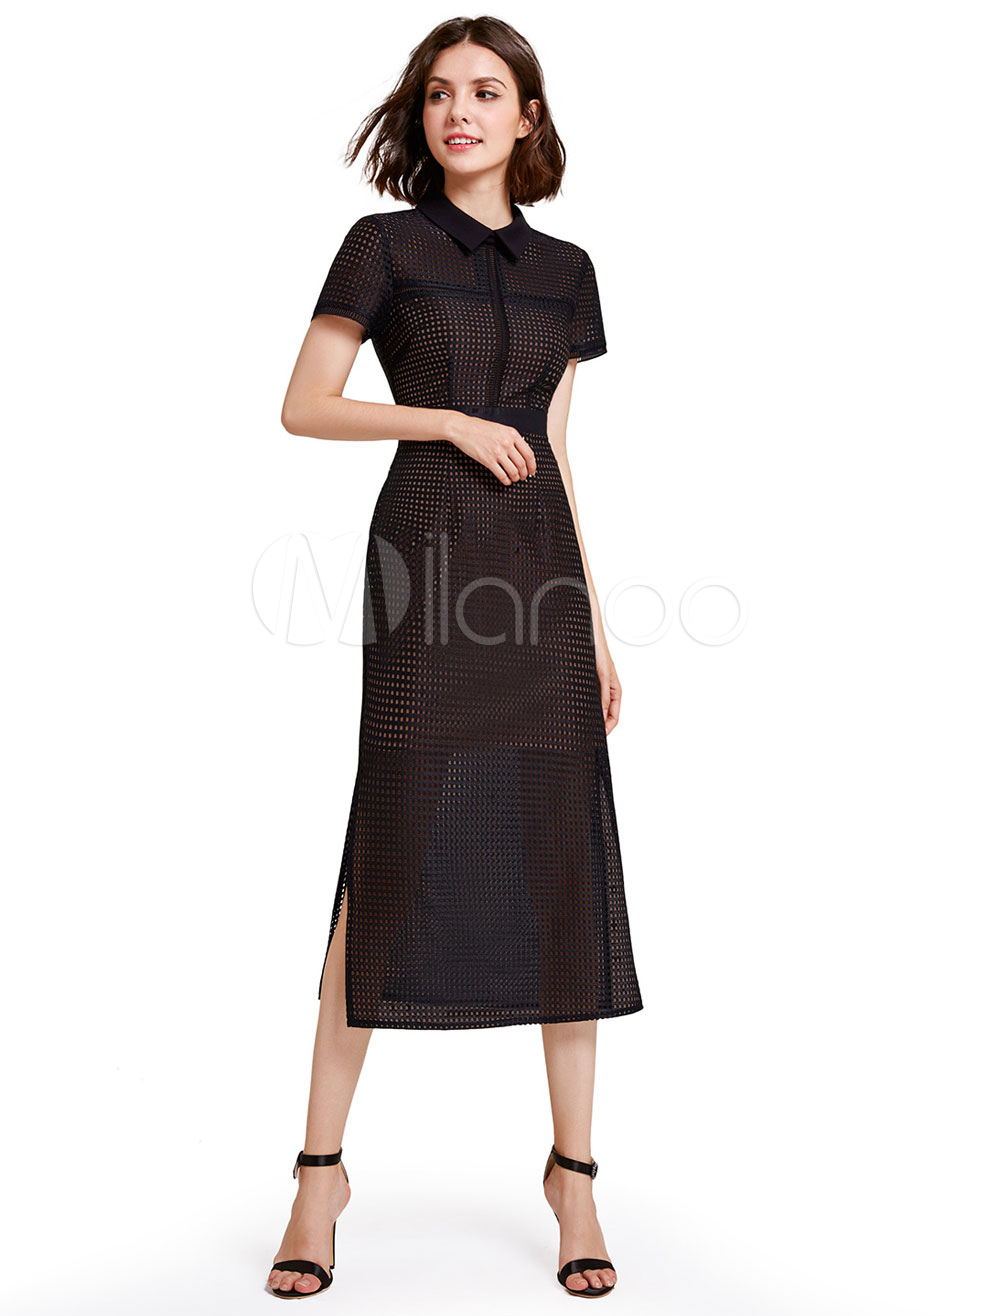 Buy Black Cocktail Dress Short Sleeve Cut Out Split Backless Party Dresses Turndown Collar A Line Tea Length Occasion Dresses for $70.39 in Milanoo store